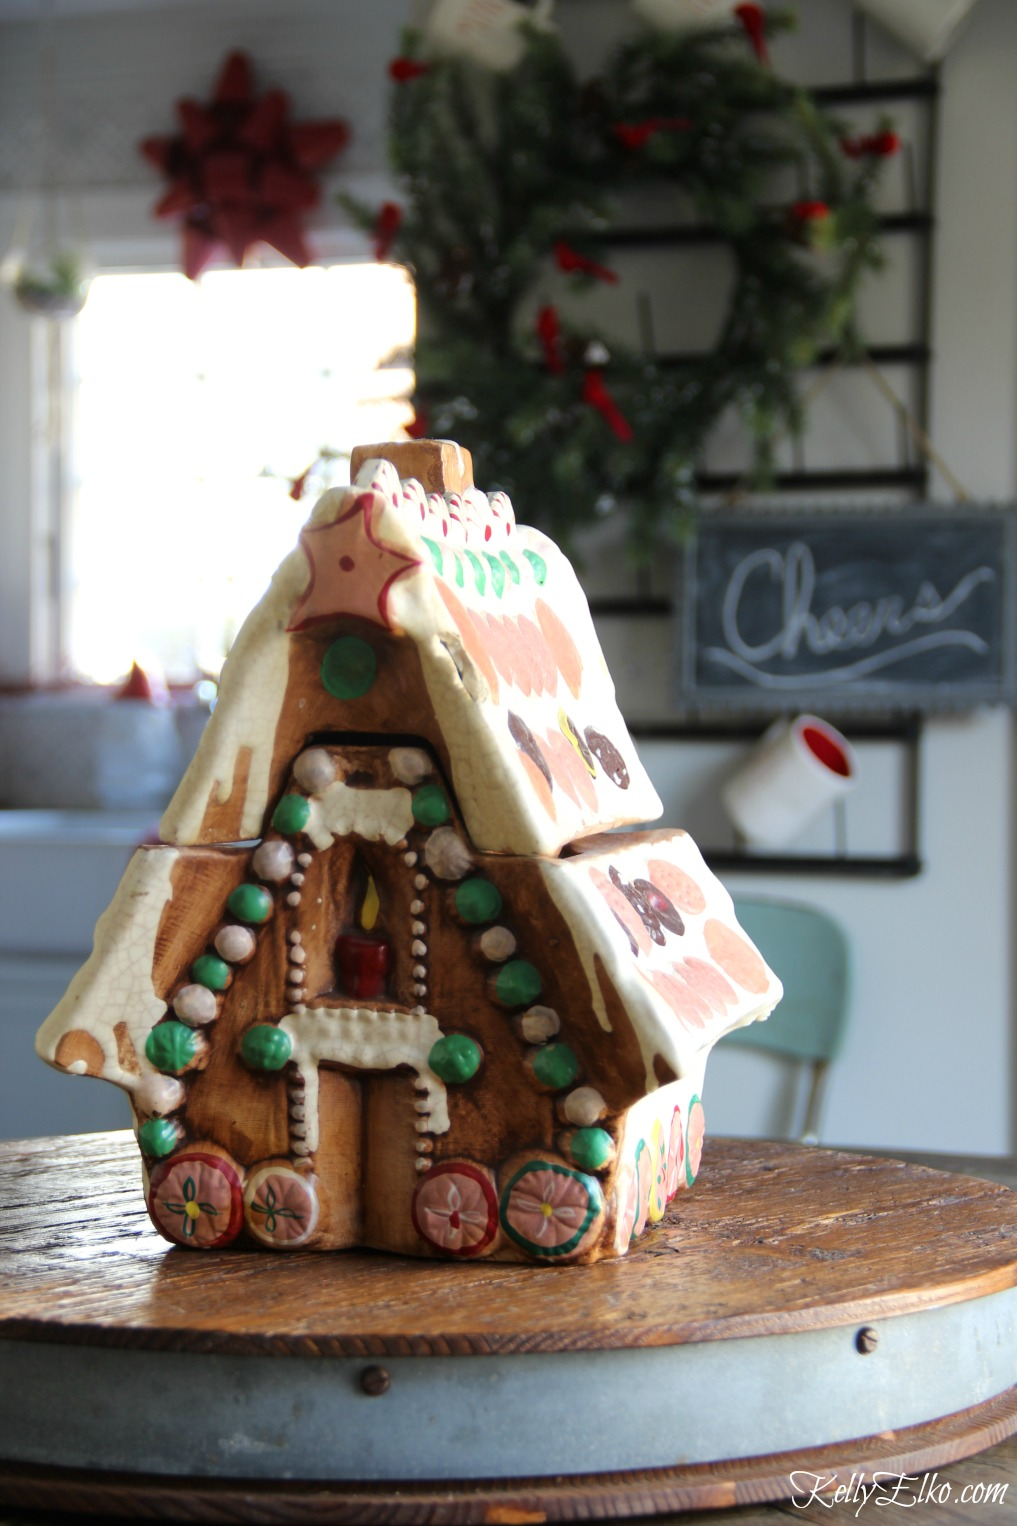 Christmas Kitchen - love this vintage gingerbread house cookie jar kellyelko.com